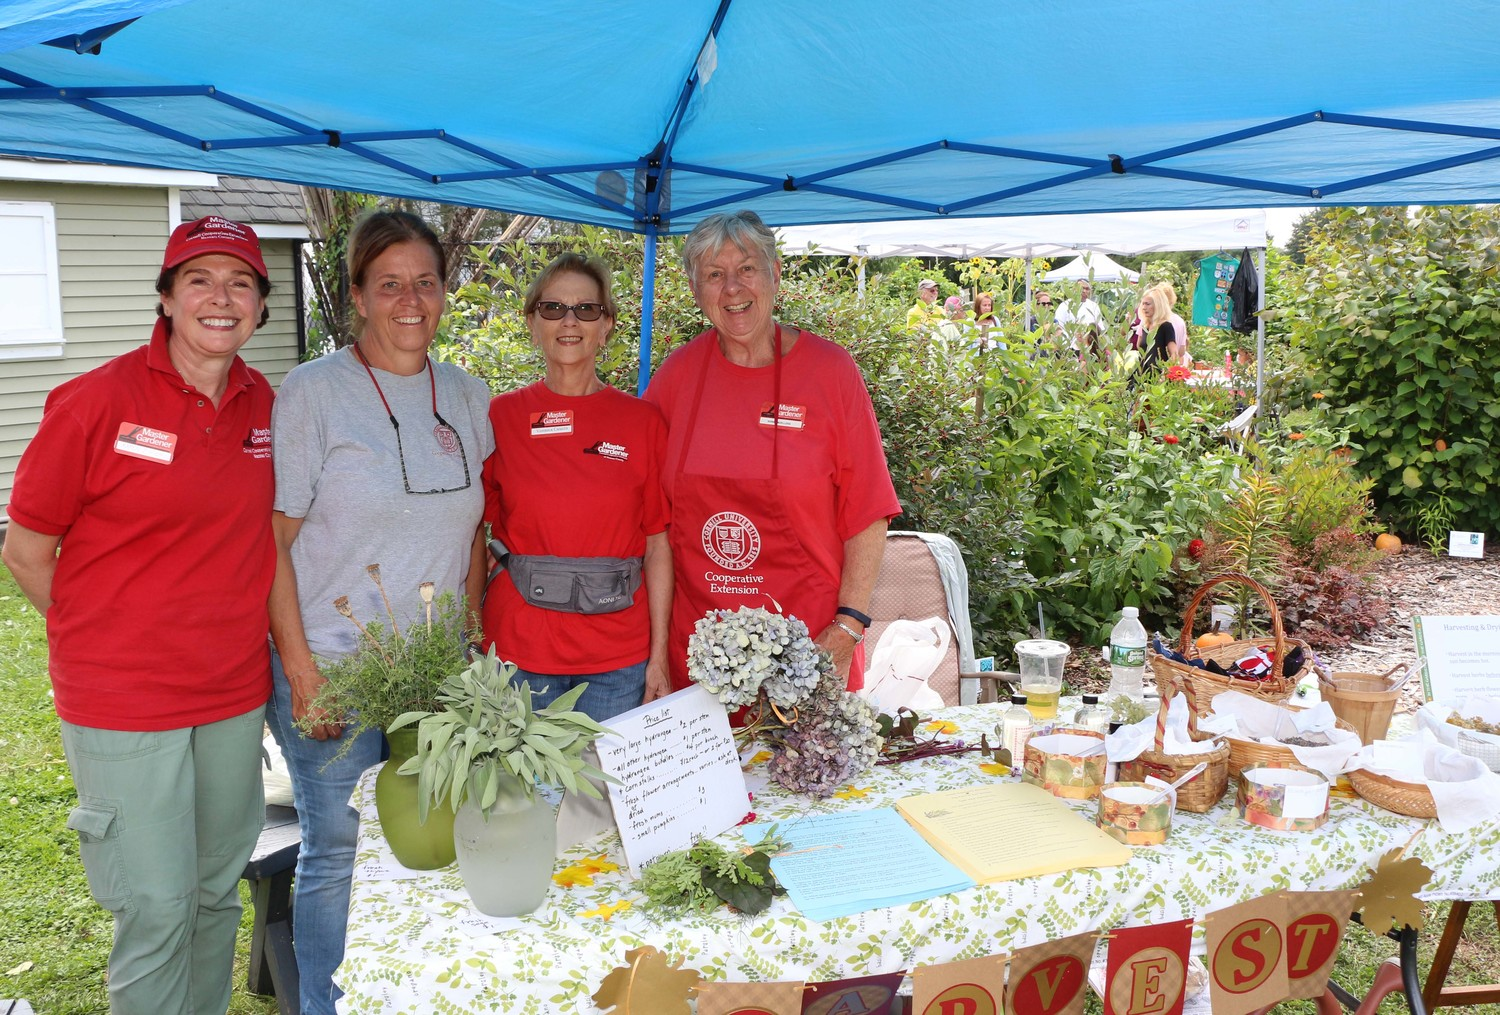 Master gardnerers Karen Zunich, Jennifer Cappello-Rigiero, Veronica Caiazza and Nonie Muellers showcased some of the farm's homegrown herbs.